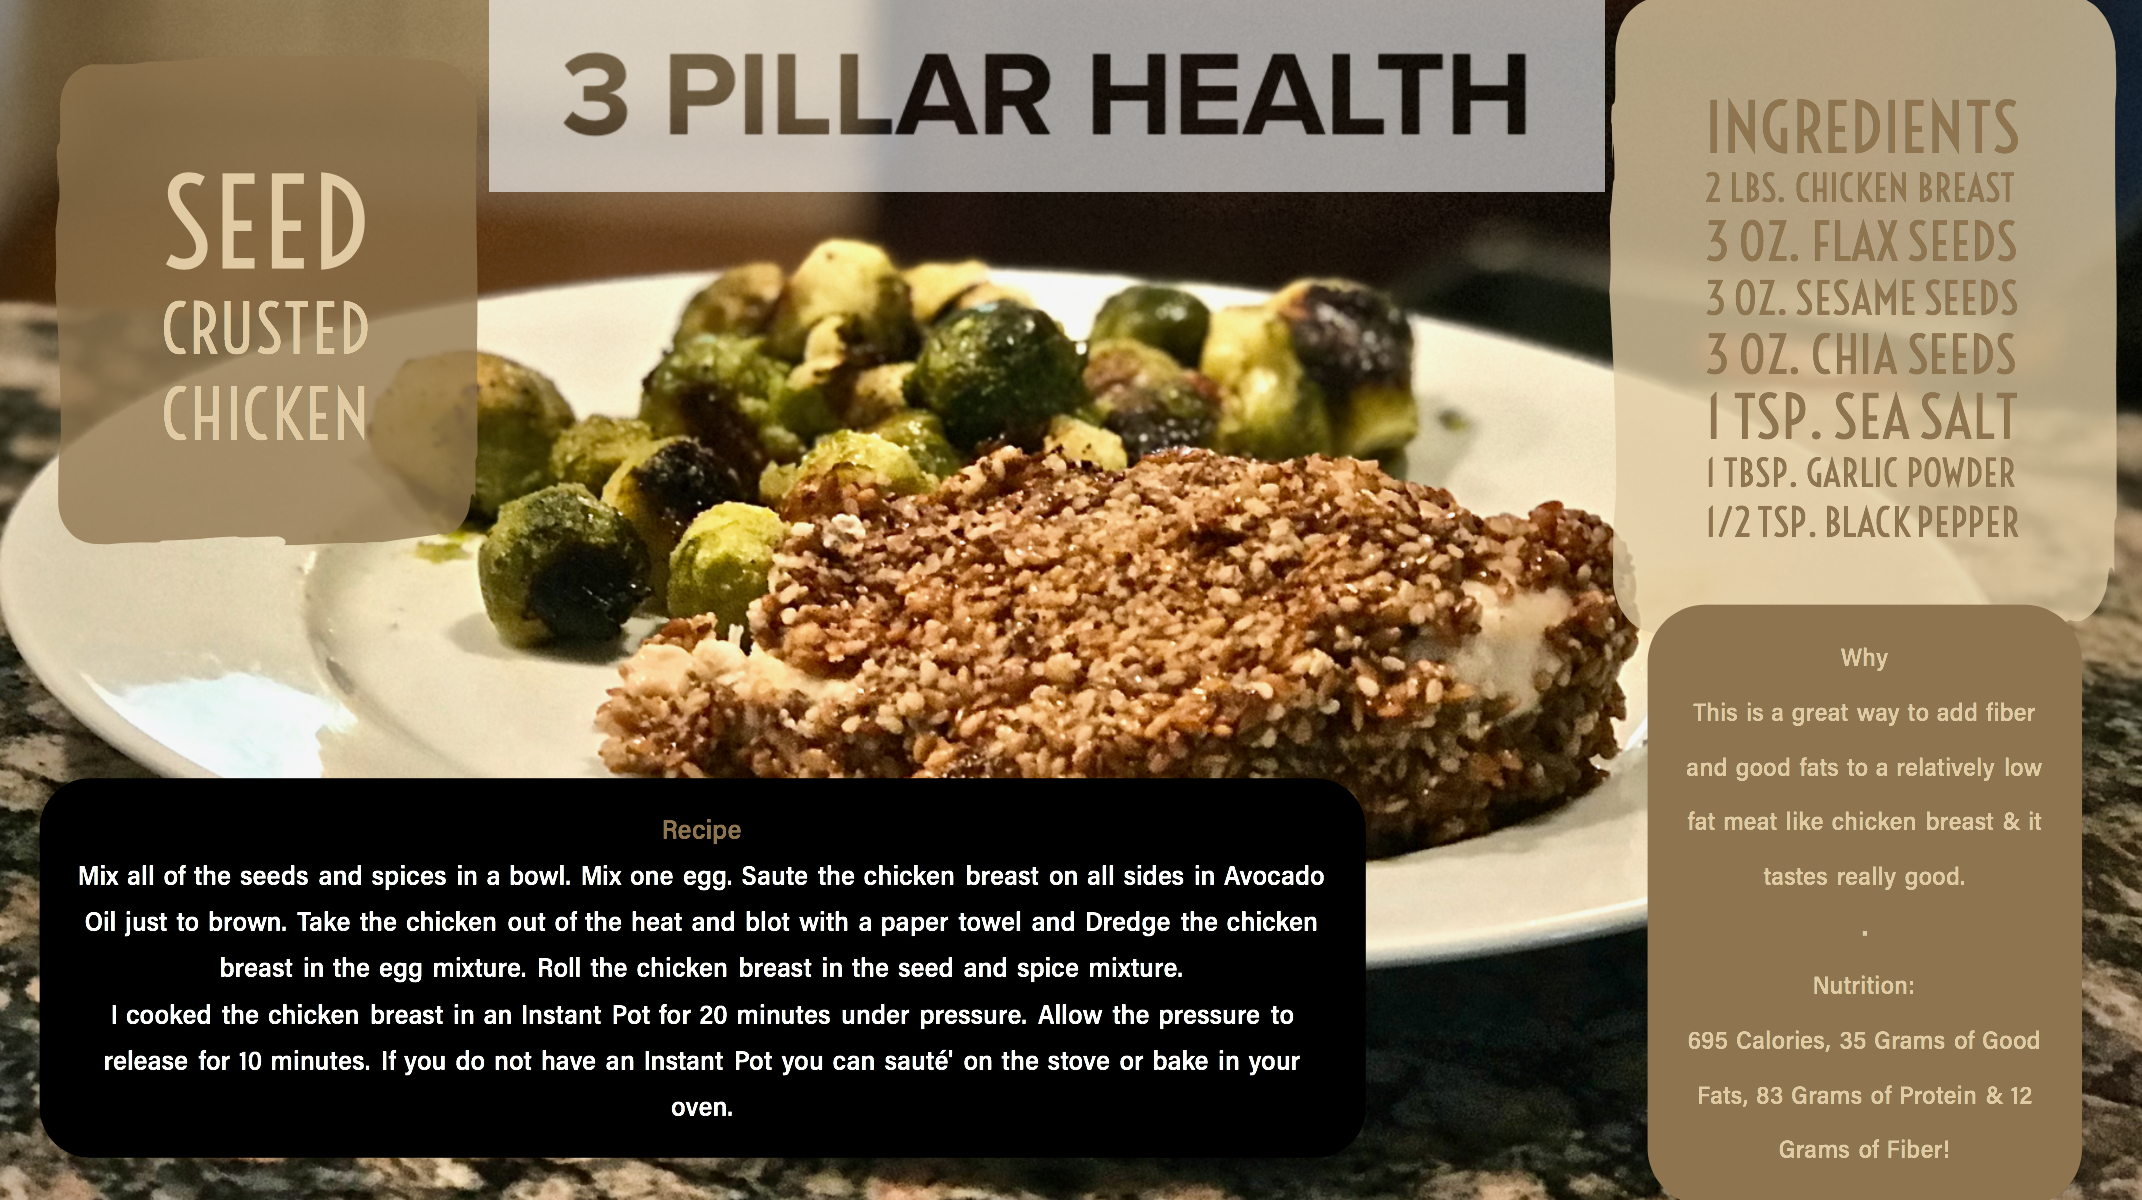 Seed Crusted Chicken Recipe Card.jpg